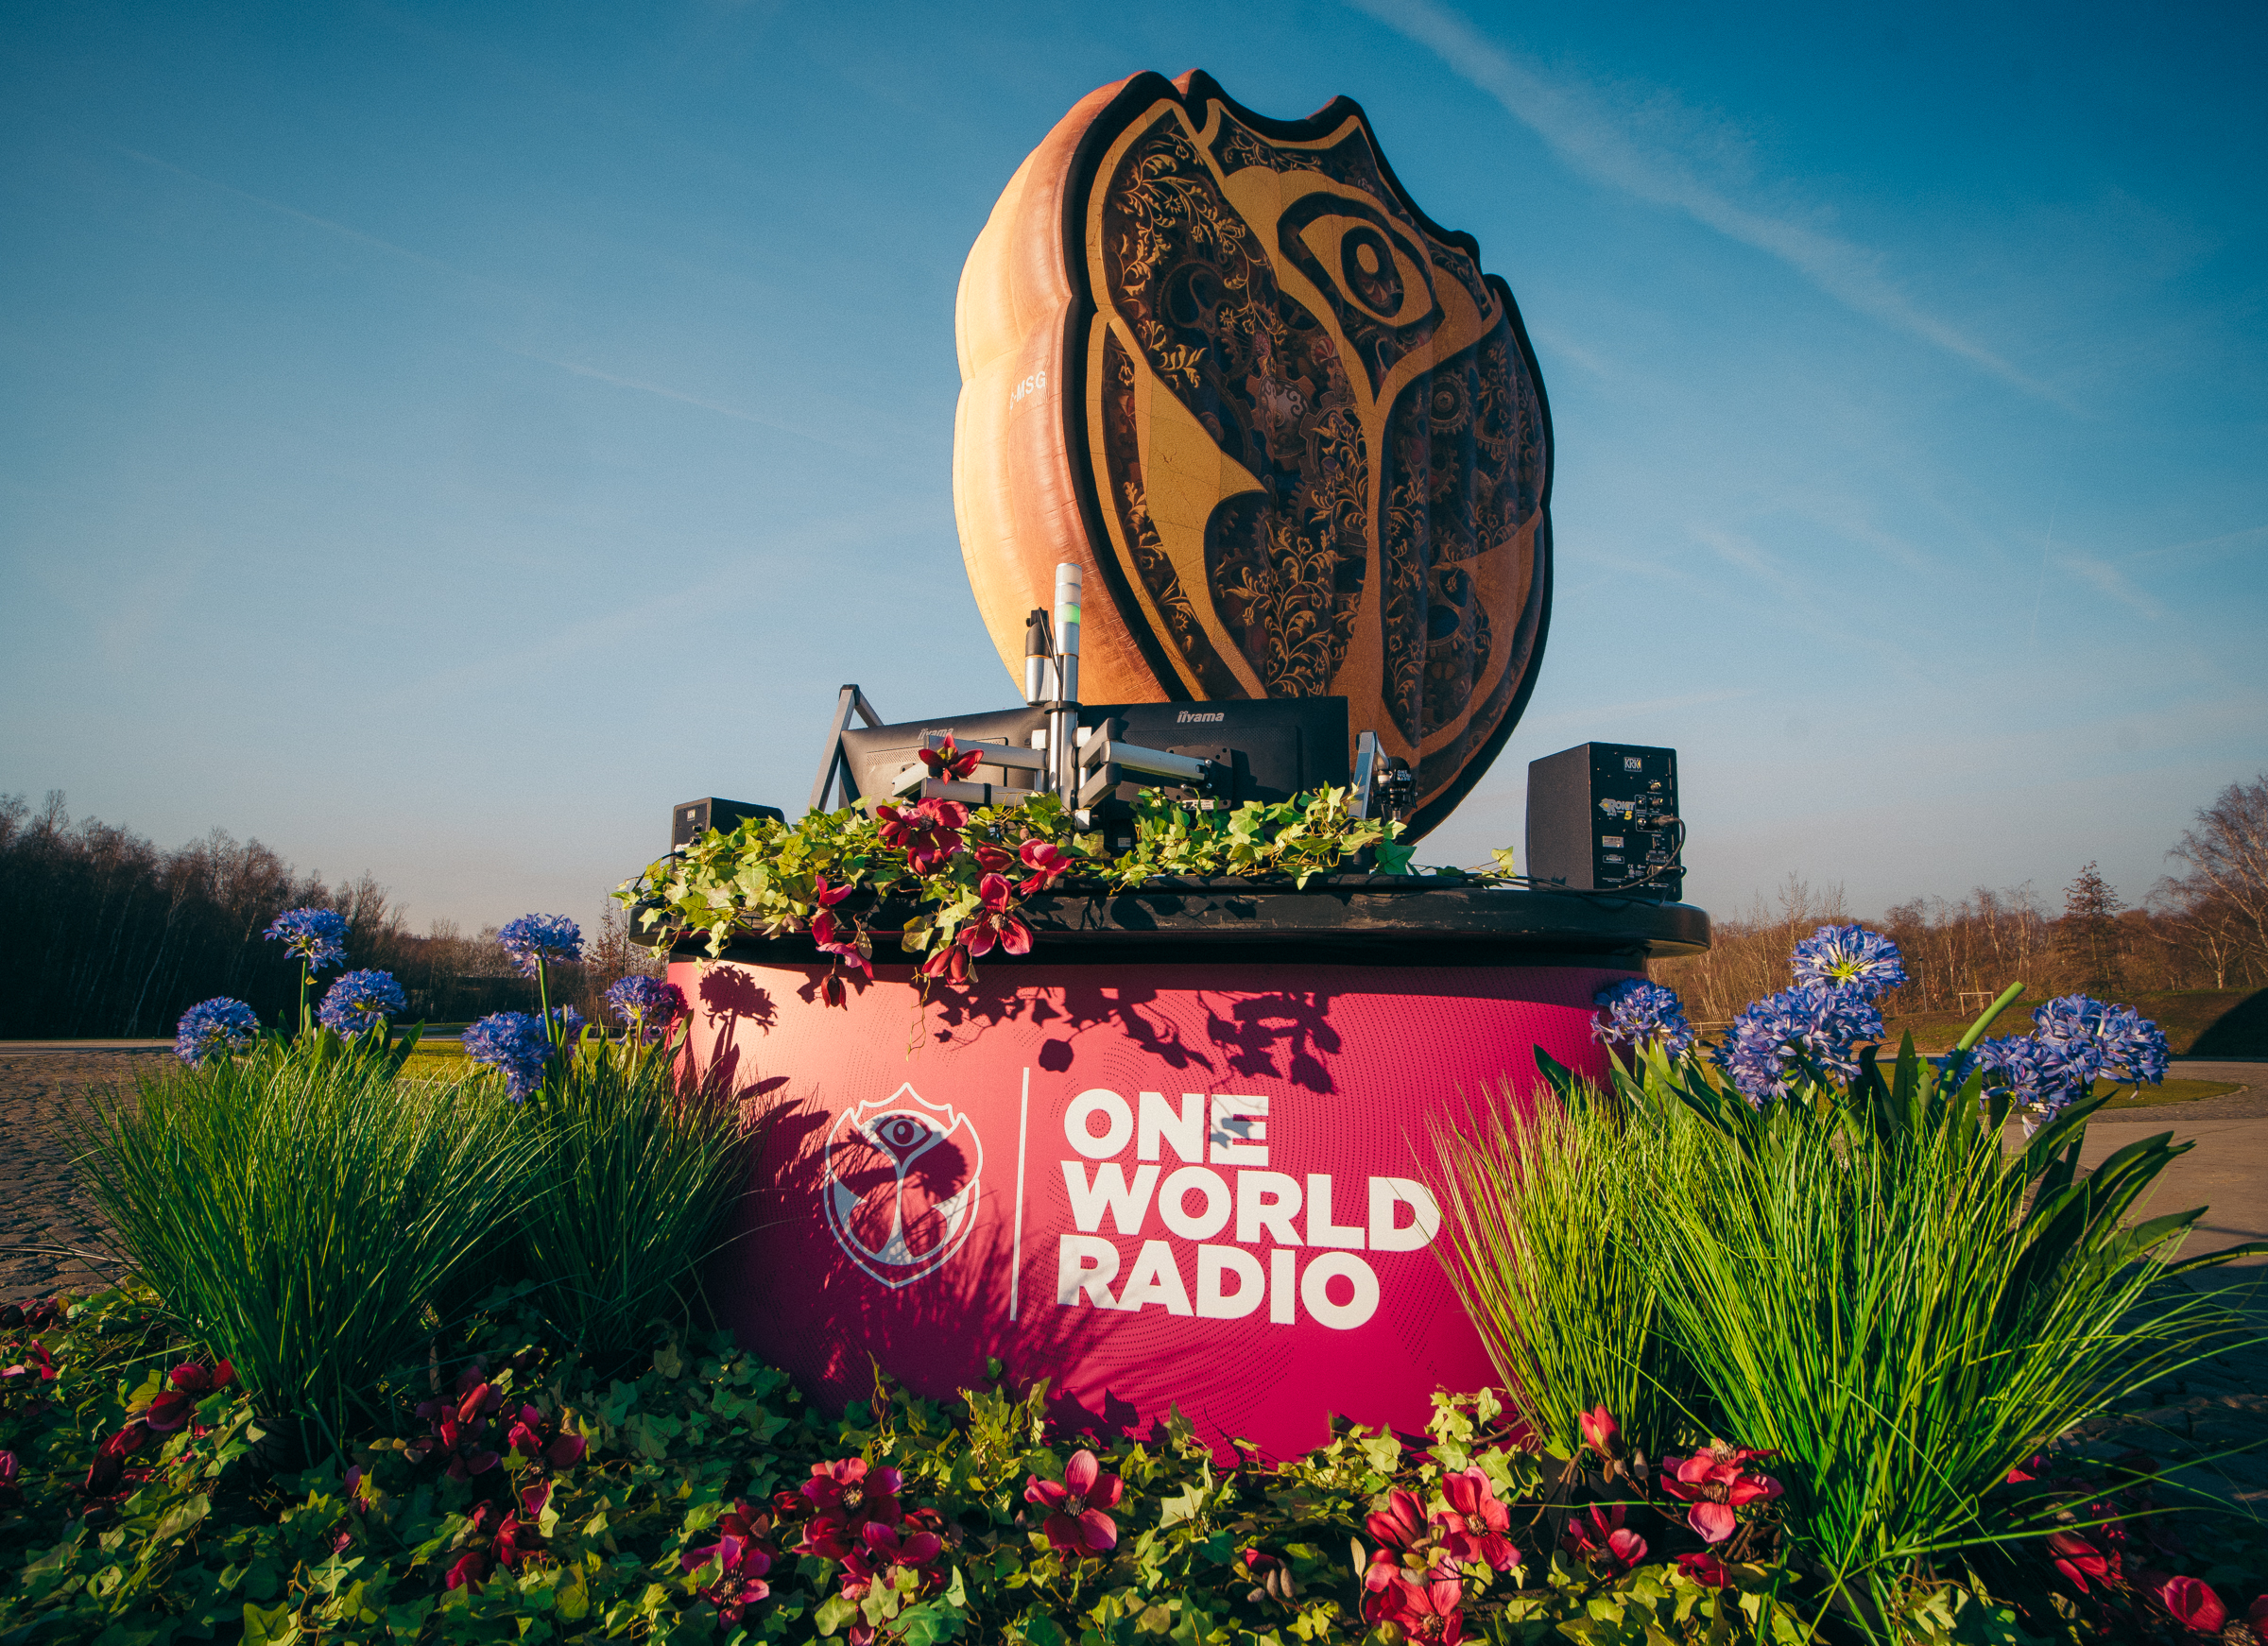 Tomorrowland Announces Streaming Platform One World Radio